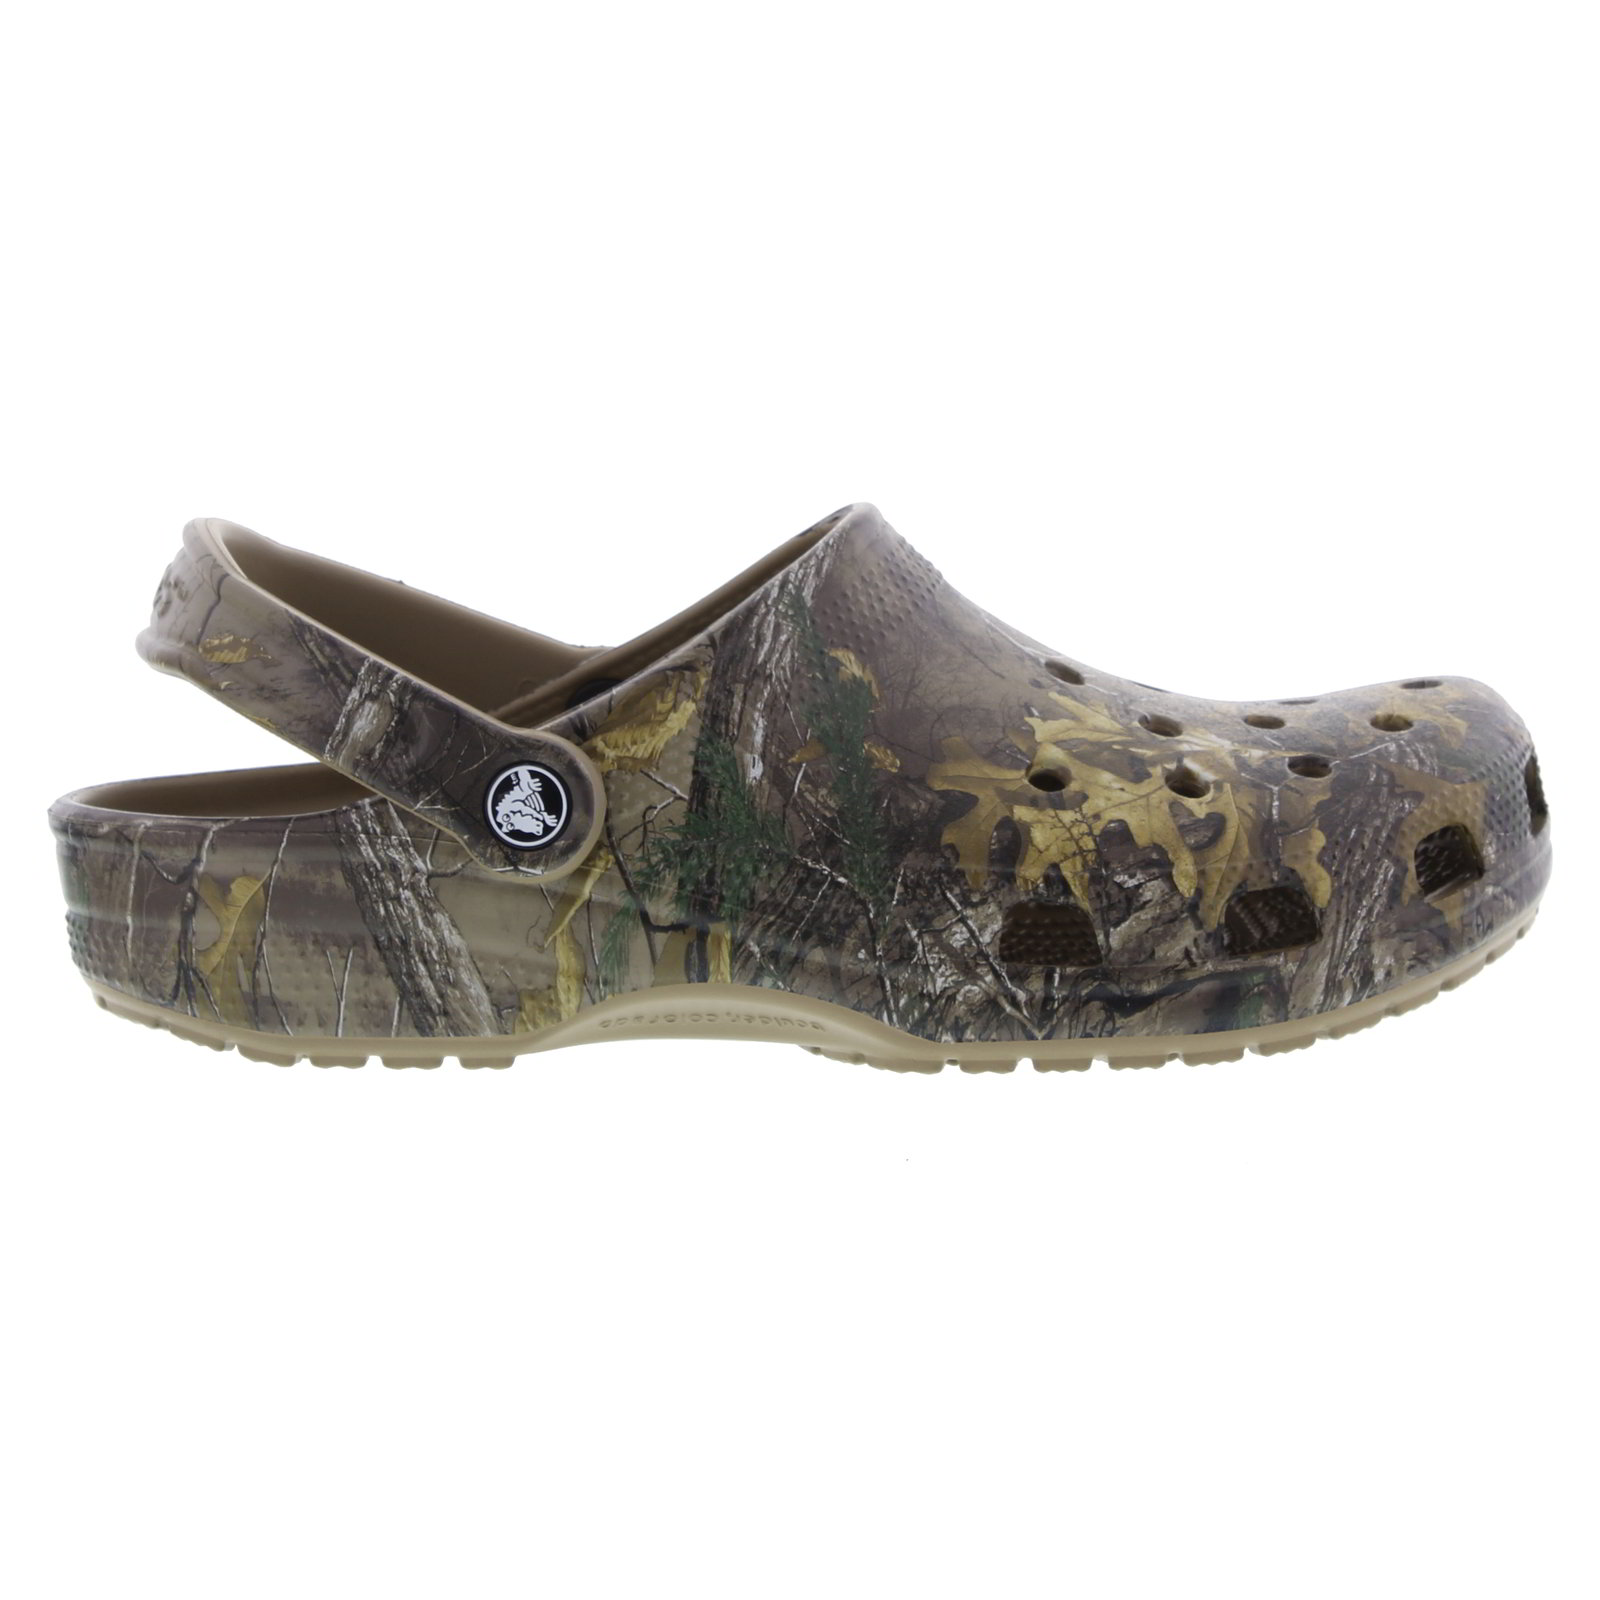 80a028767 Crocs Classic Realtree Xtra Clog Mens Vegan Clogs Sandals Shoes Size ...